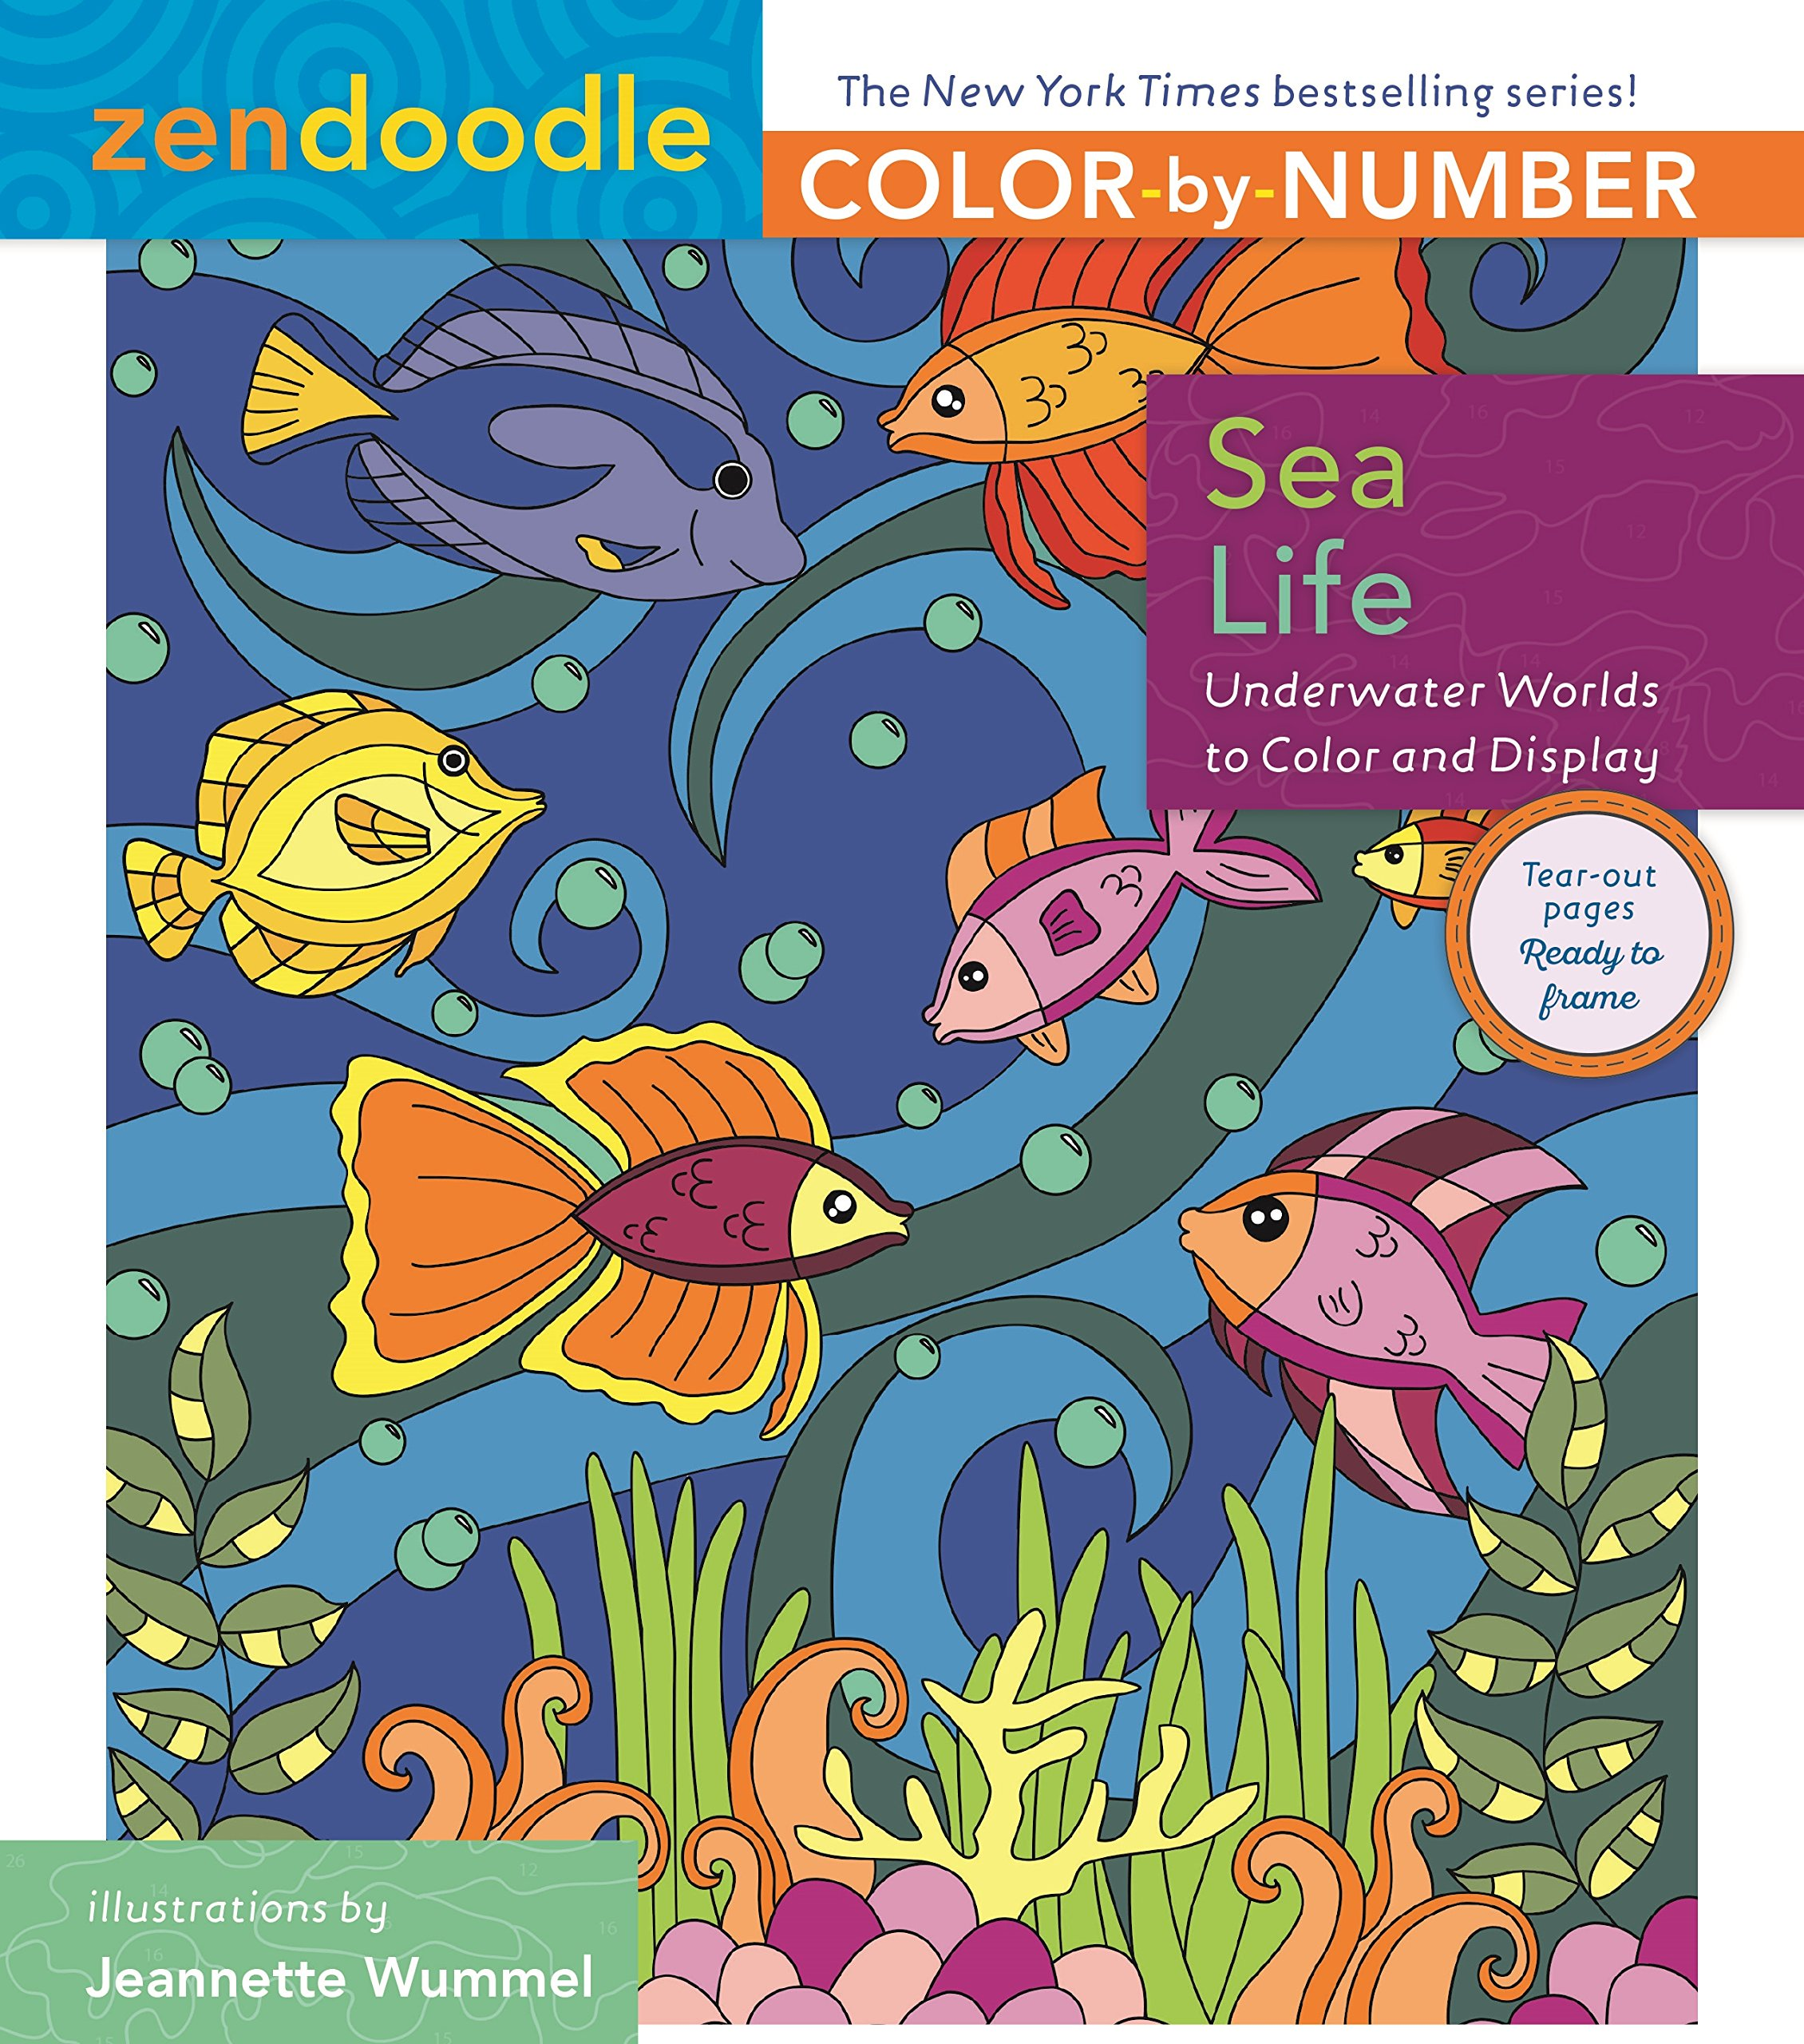 Zendoodle coloring enchanting gardens - Zendoodle Color By Number Sea Life Underwater Worlds To Color And Display Amazon Co Uk Jeanette Wummel 9781250140746 Books